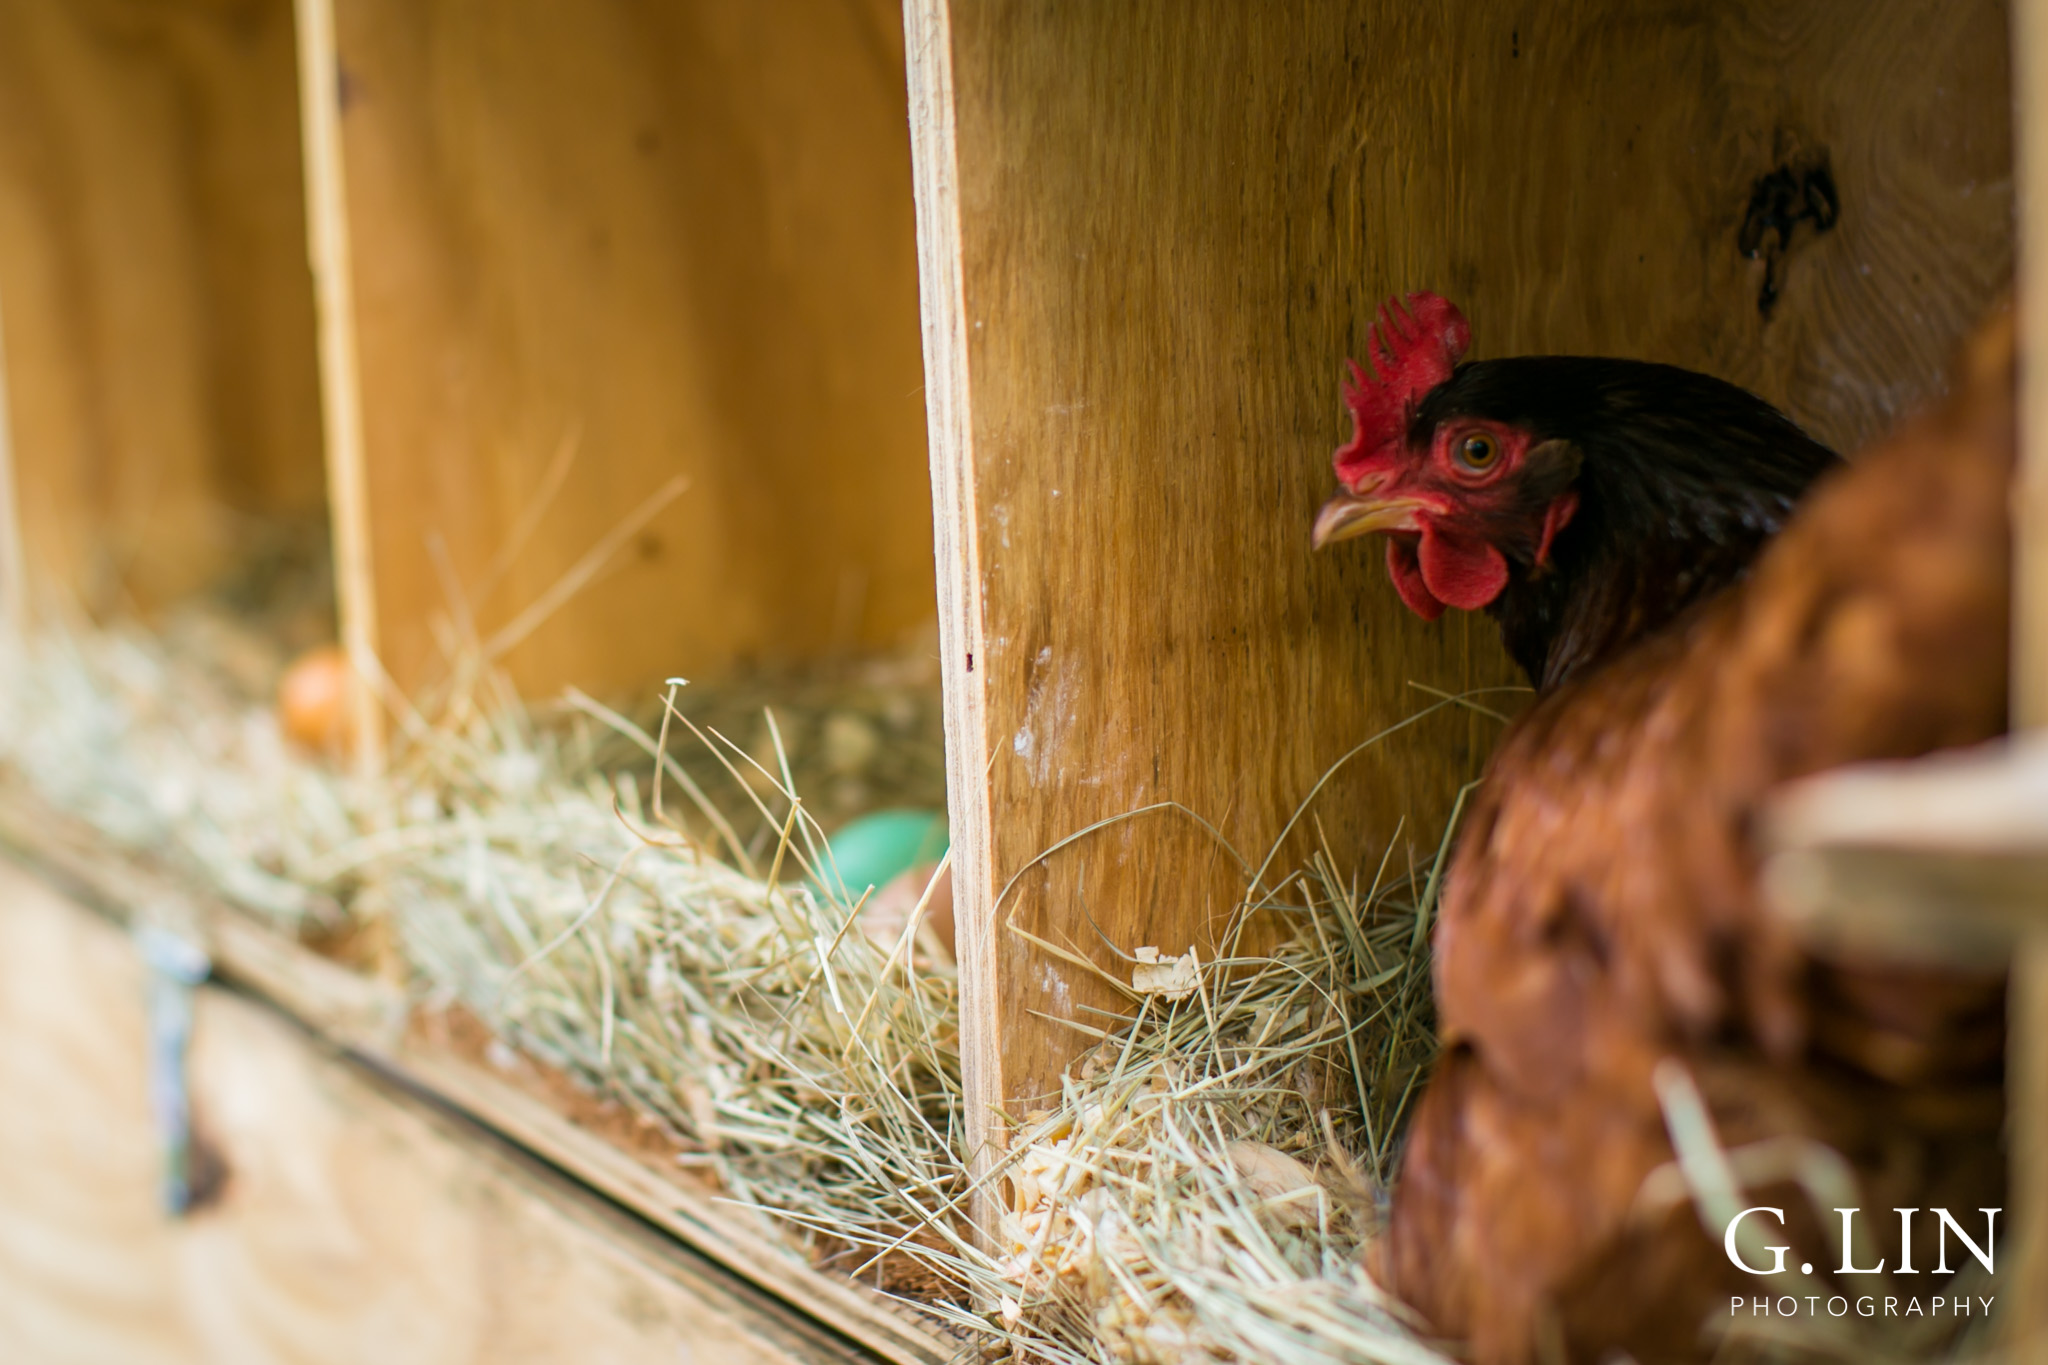 G. Lin Photography | Raleigh Event Photographer | Chicken inside coop laying eggs